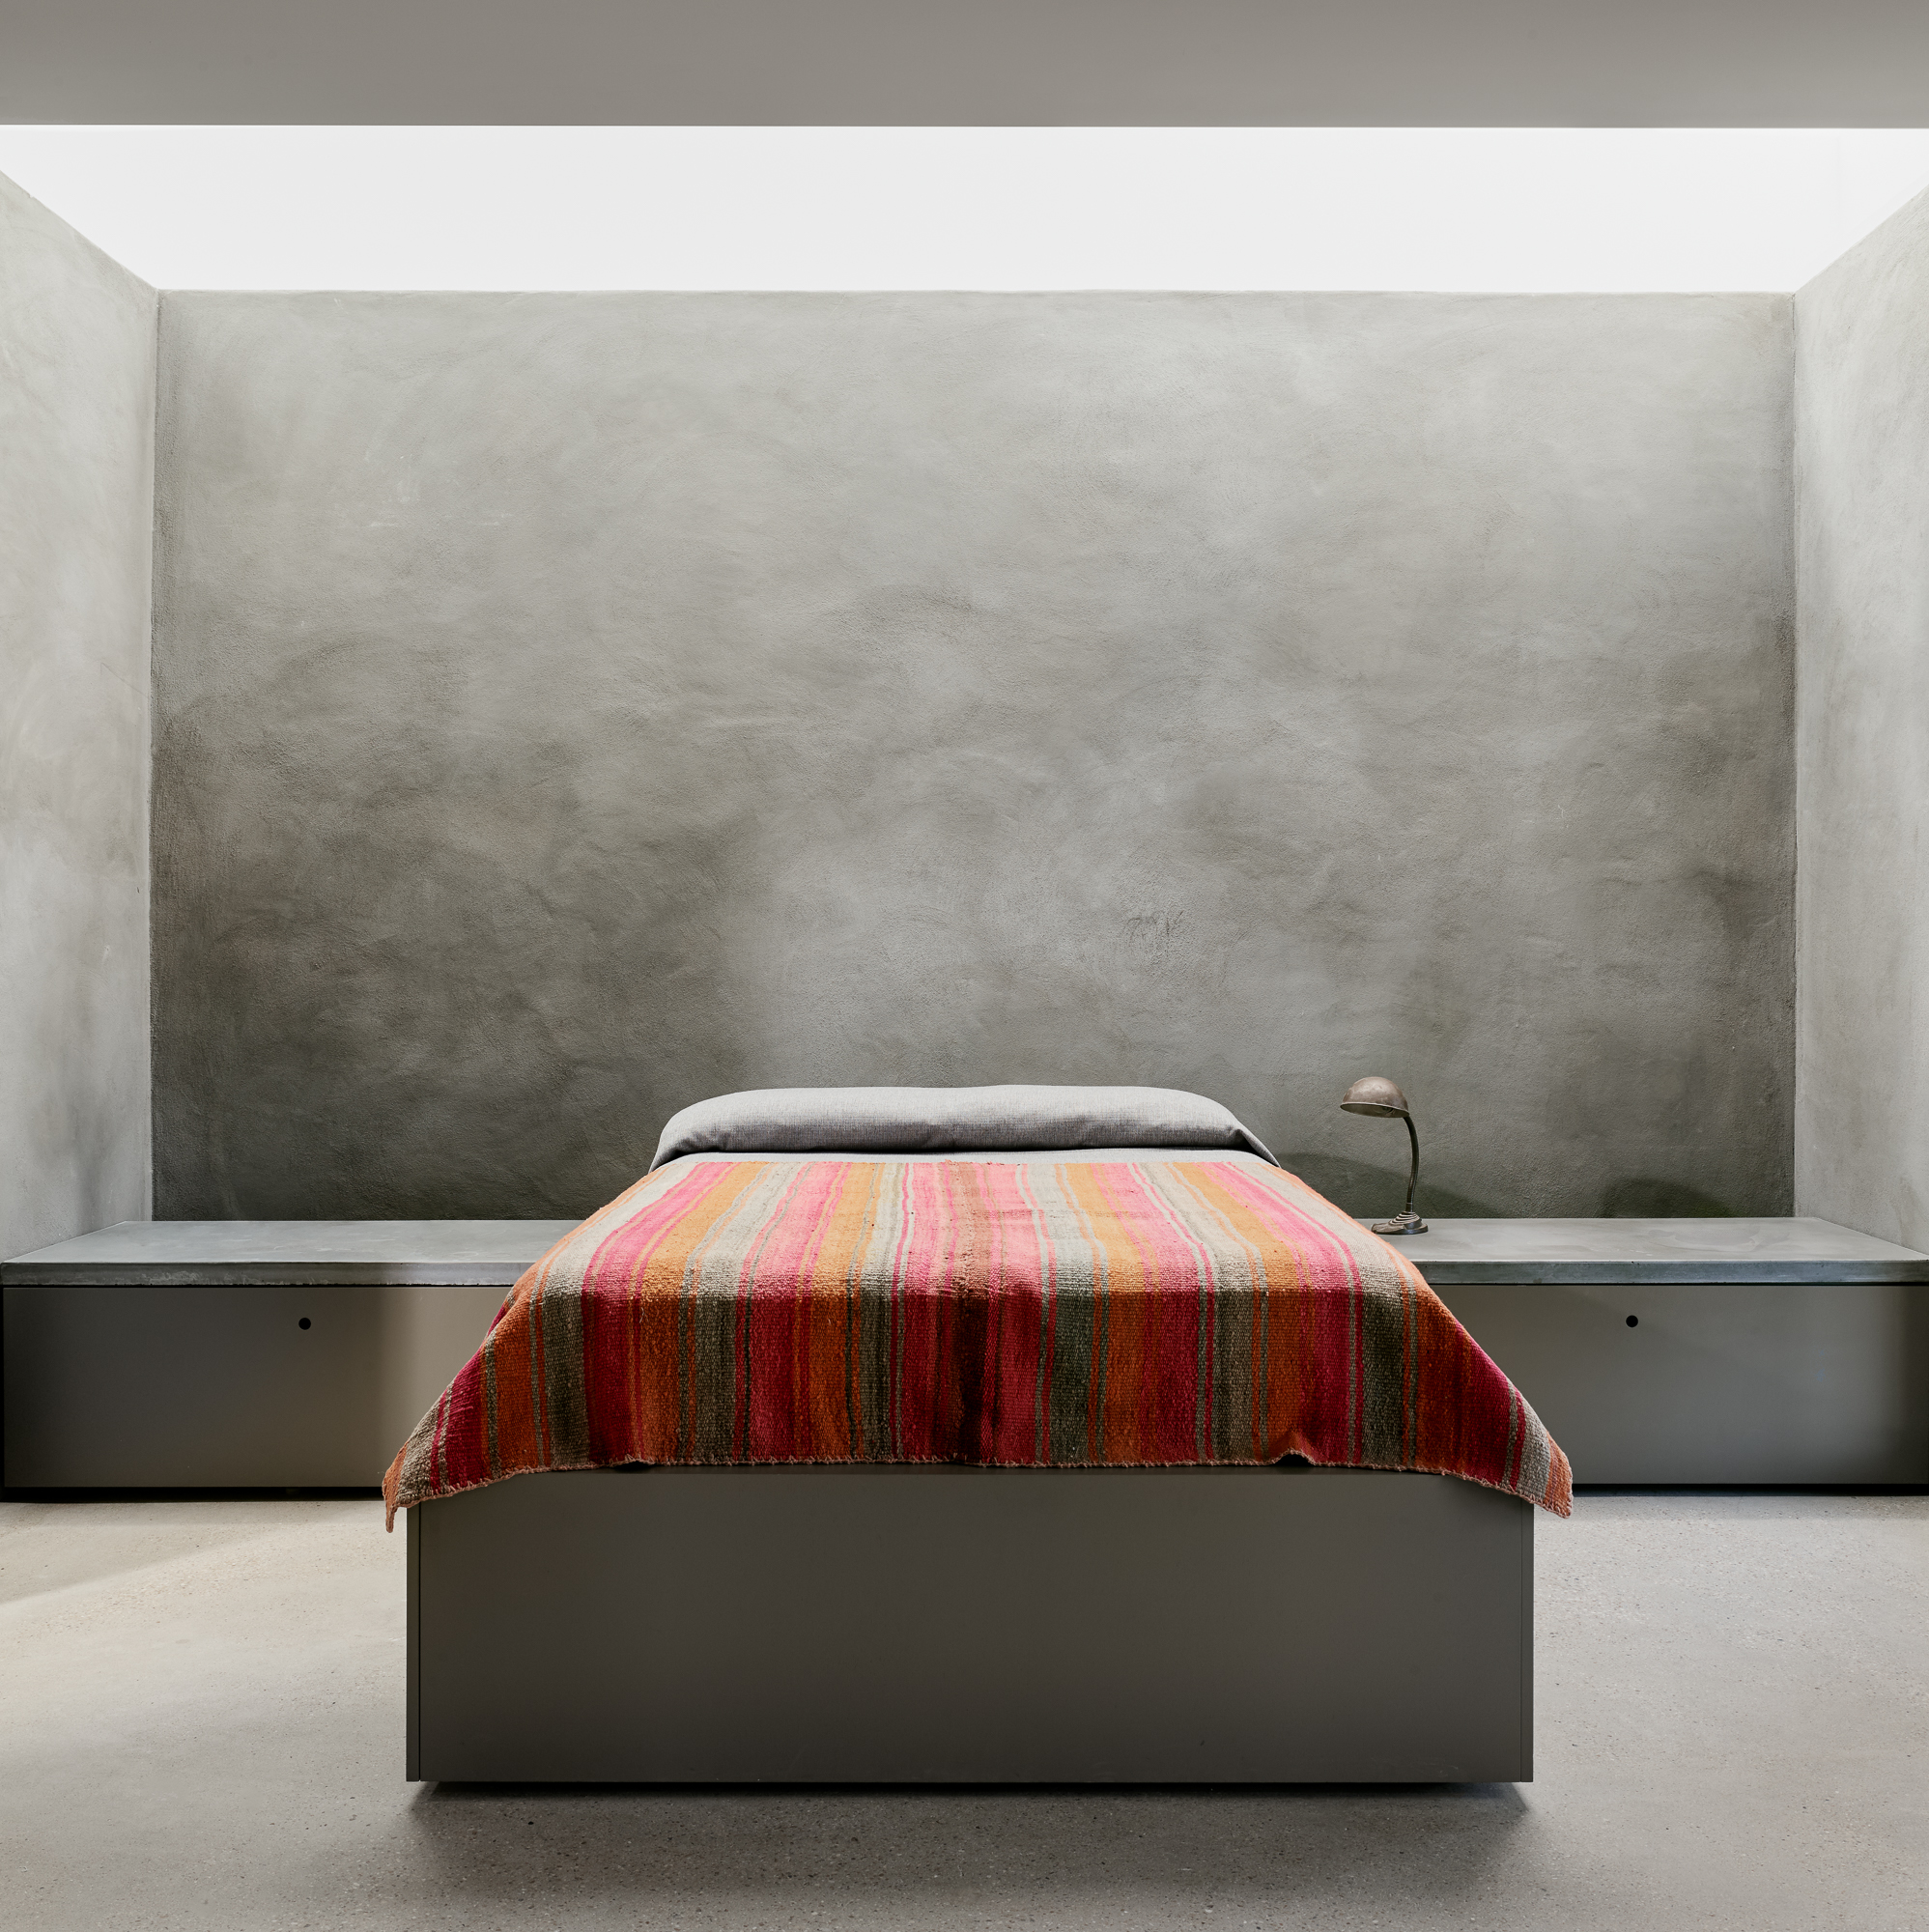 A minimalist bedroom with gray concrete walls and a bed with a pink patterned bedspread.